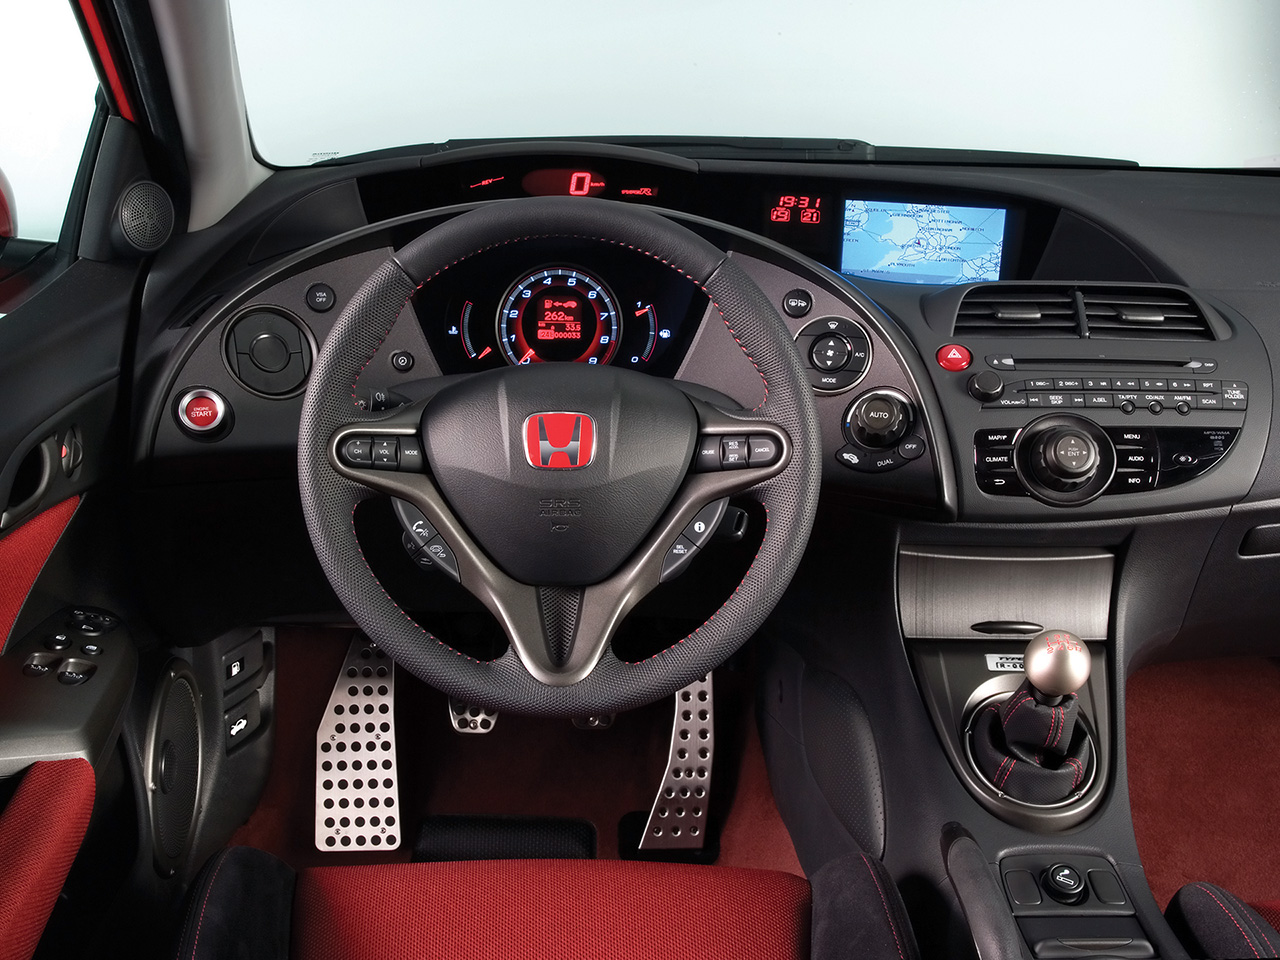 2015 Honda Civic Type R Interior-1.bp.blogspot.com